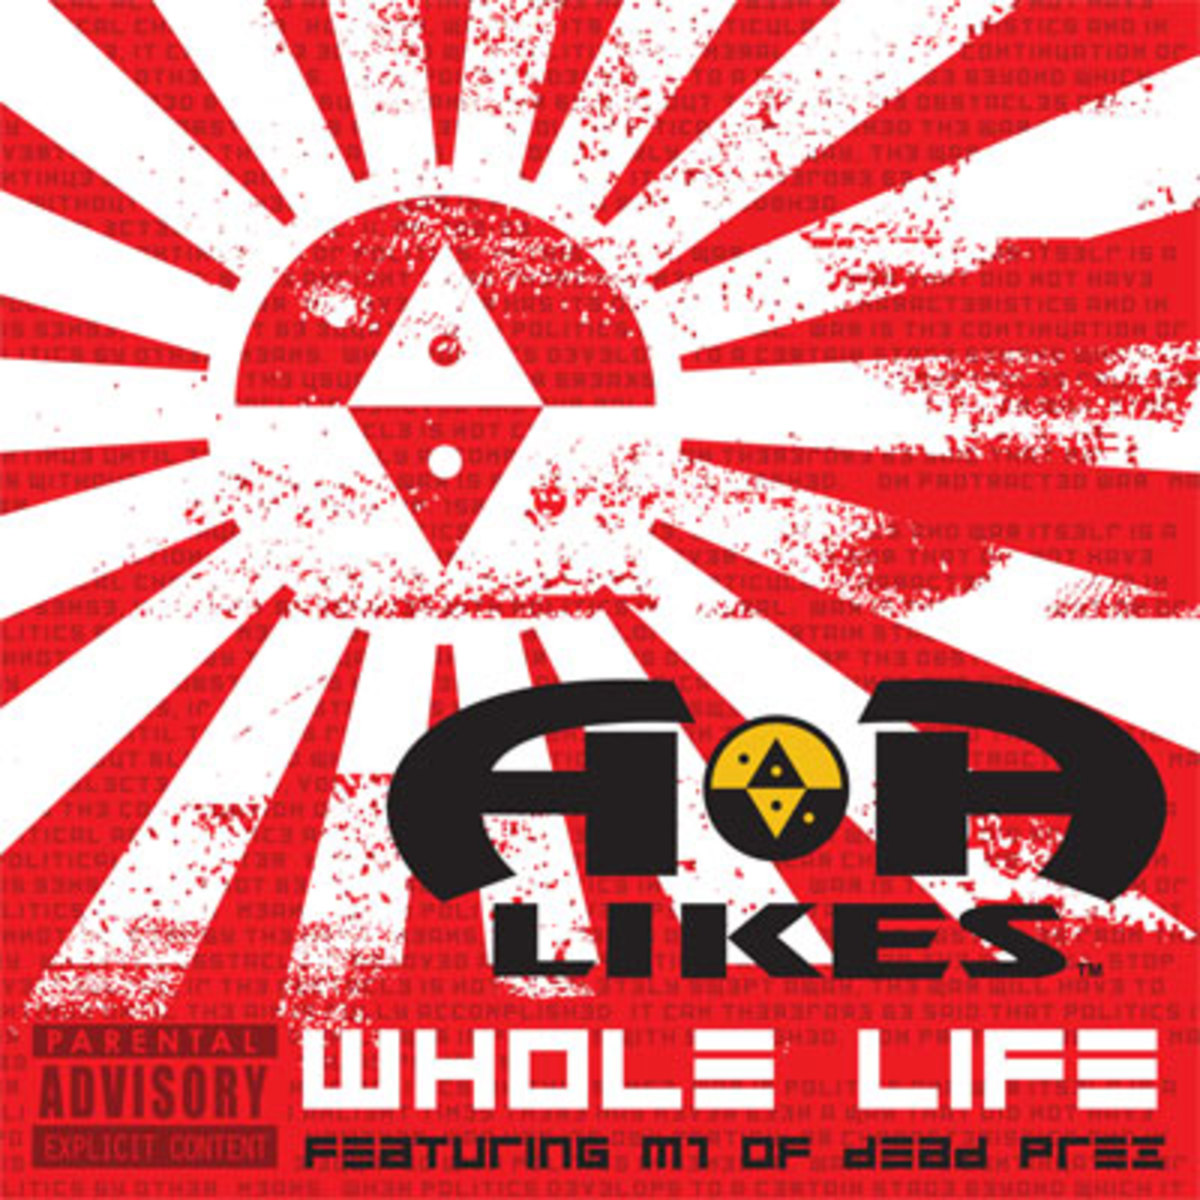 aalikes-wholelife.jpg